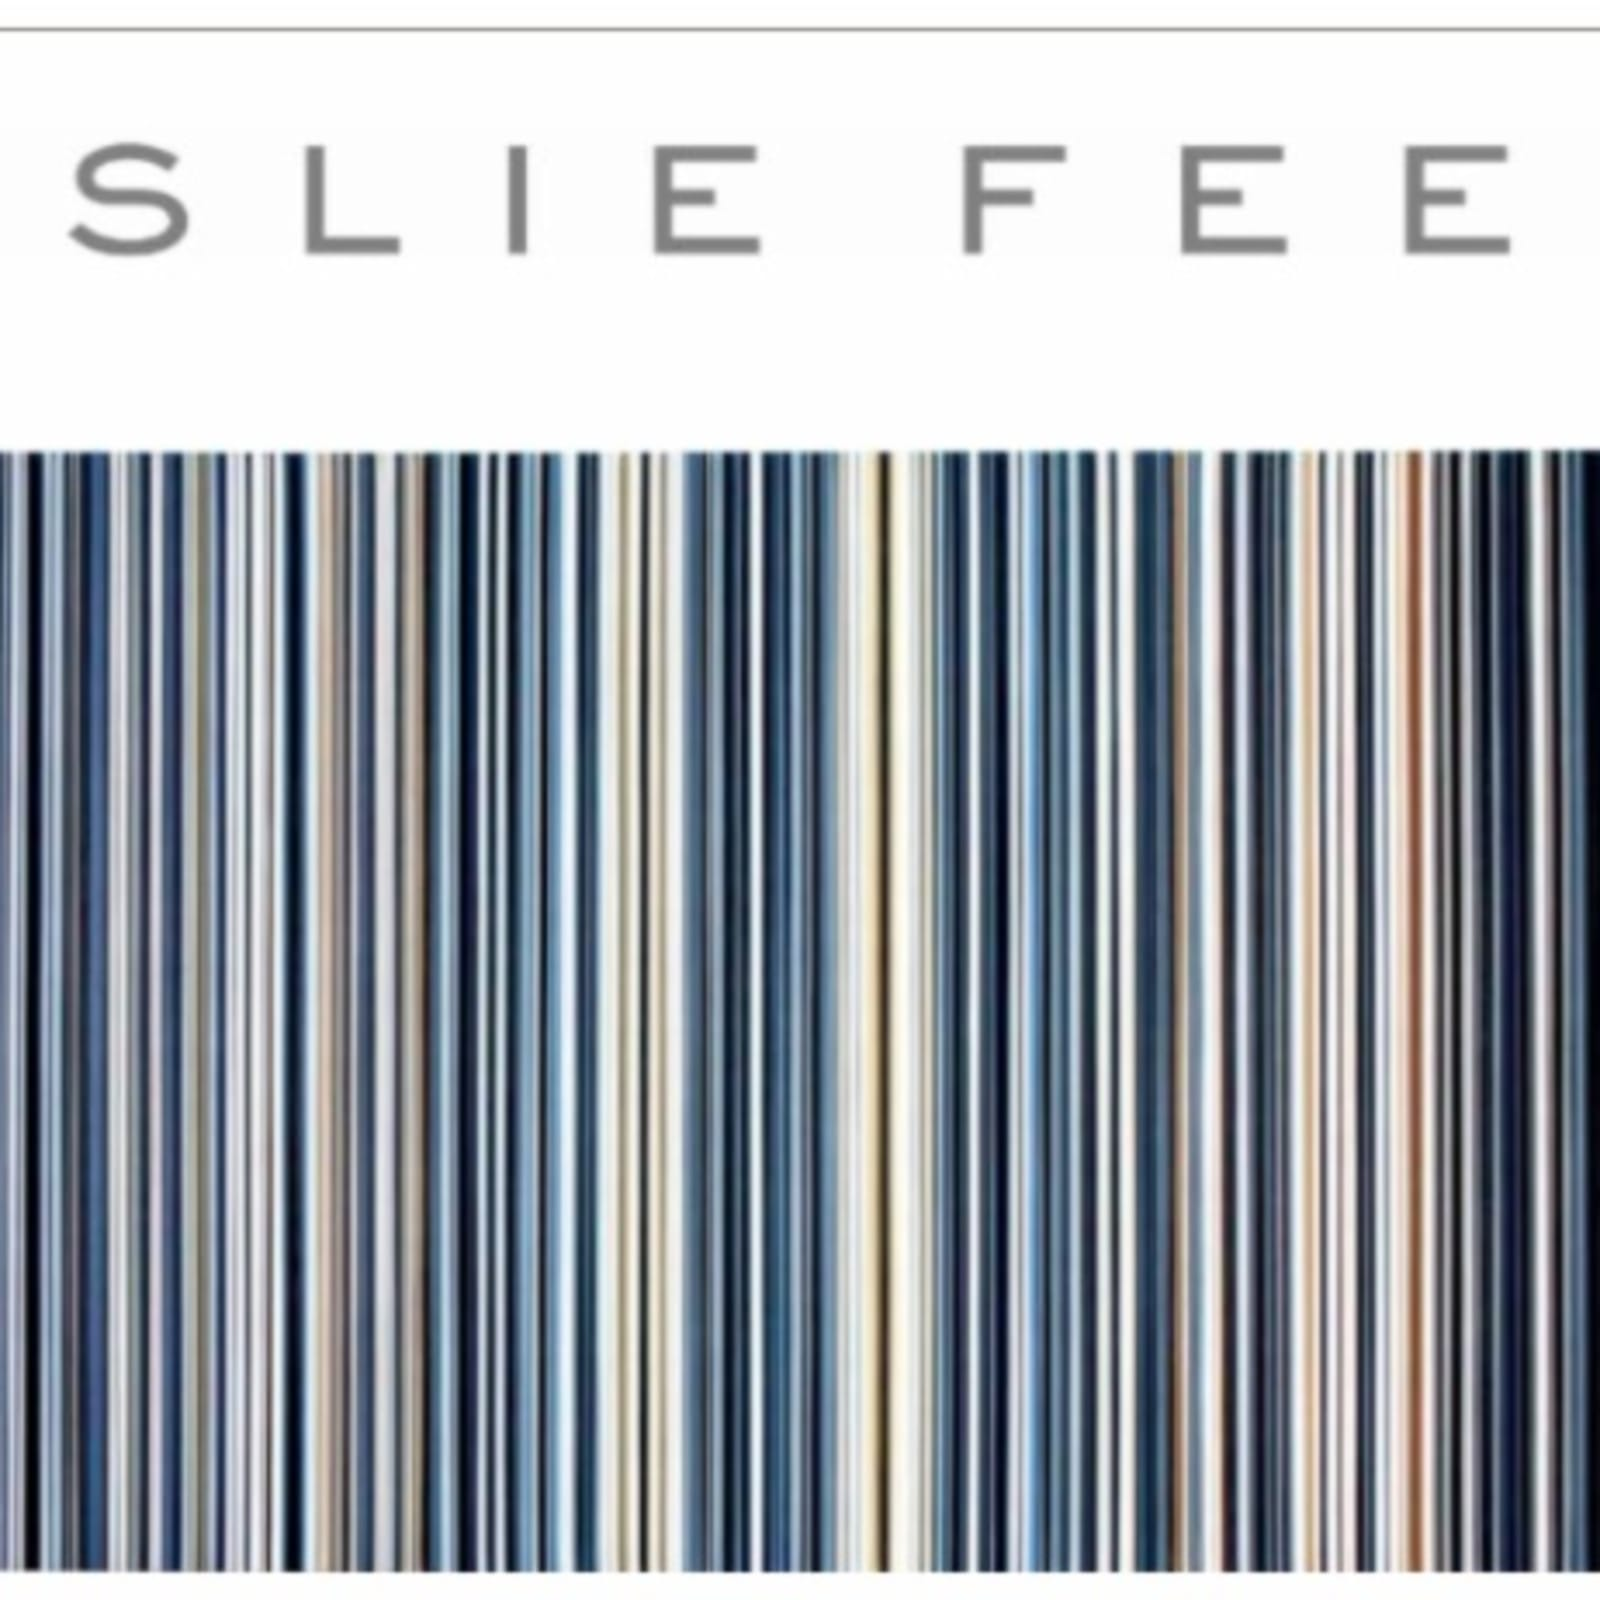 Solo Exhibition at Leslie Feely, New York